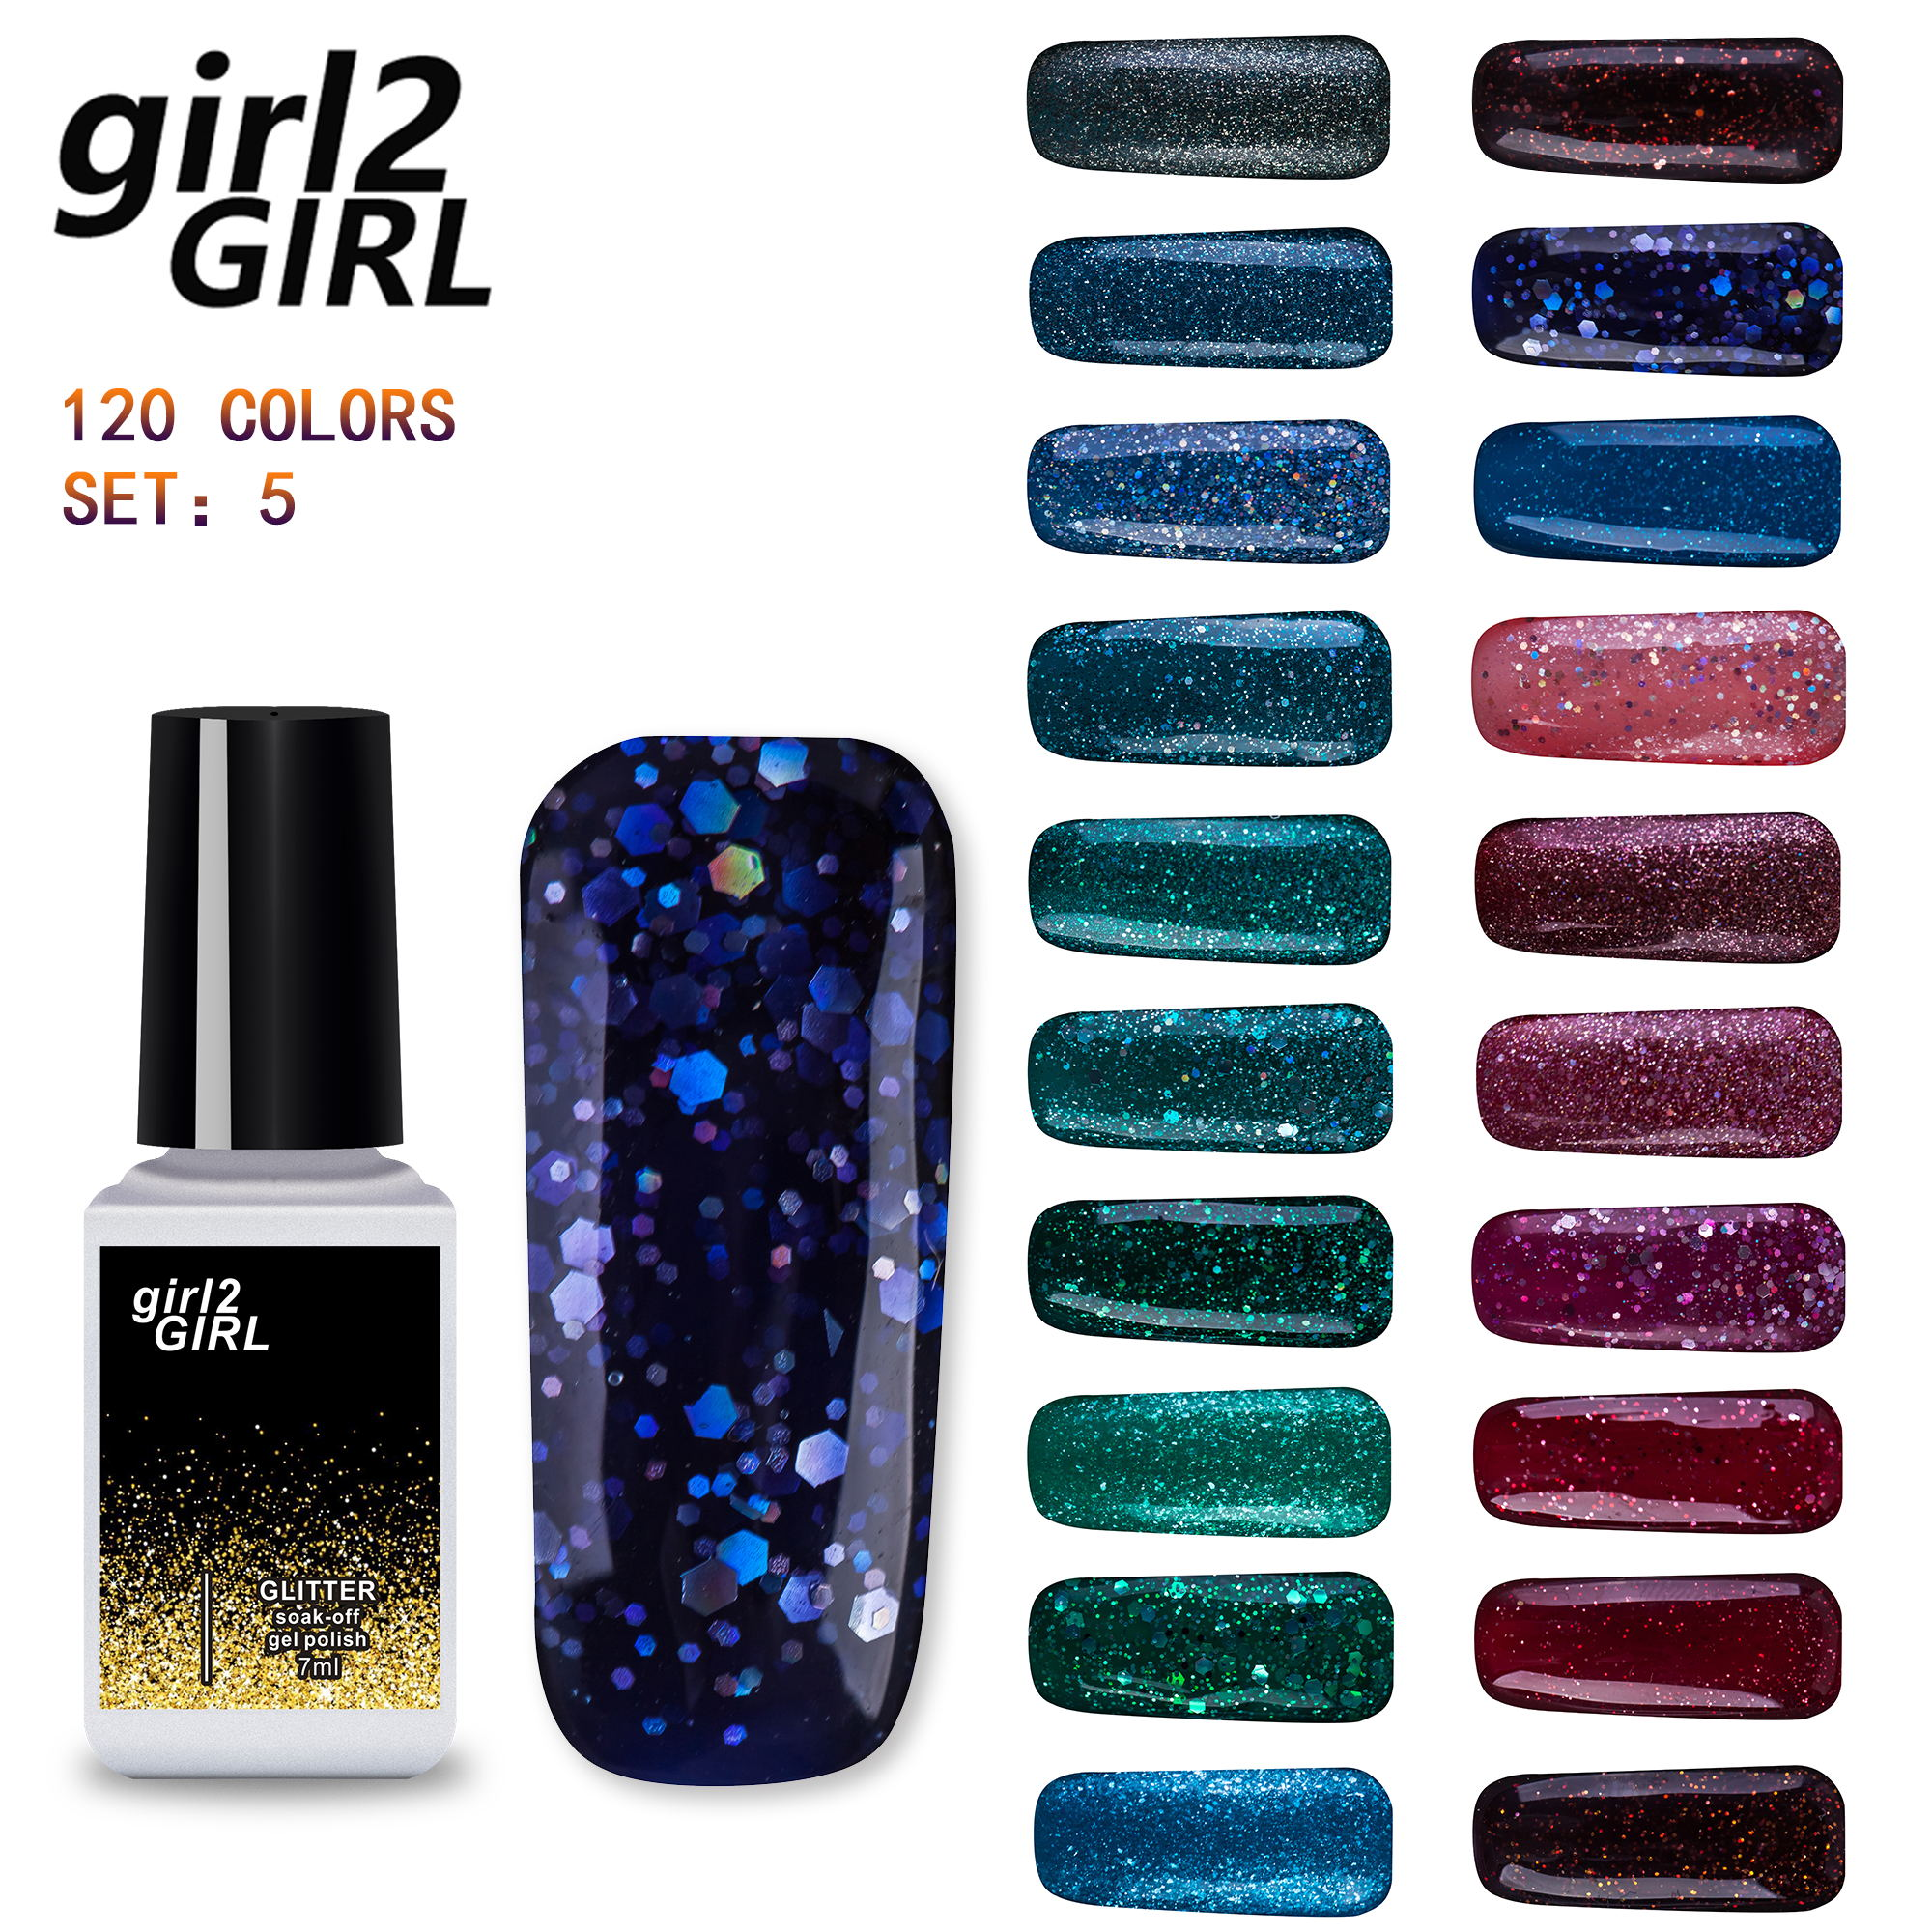 girl2Girl UV Gel Nail Manicure 7ml Diamond Glitter UV Nail Polish ...